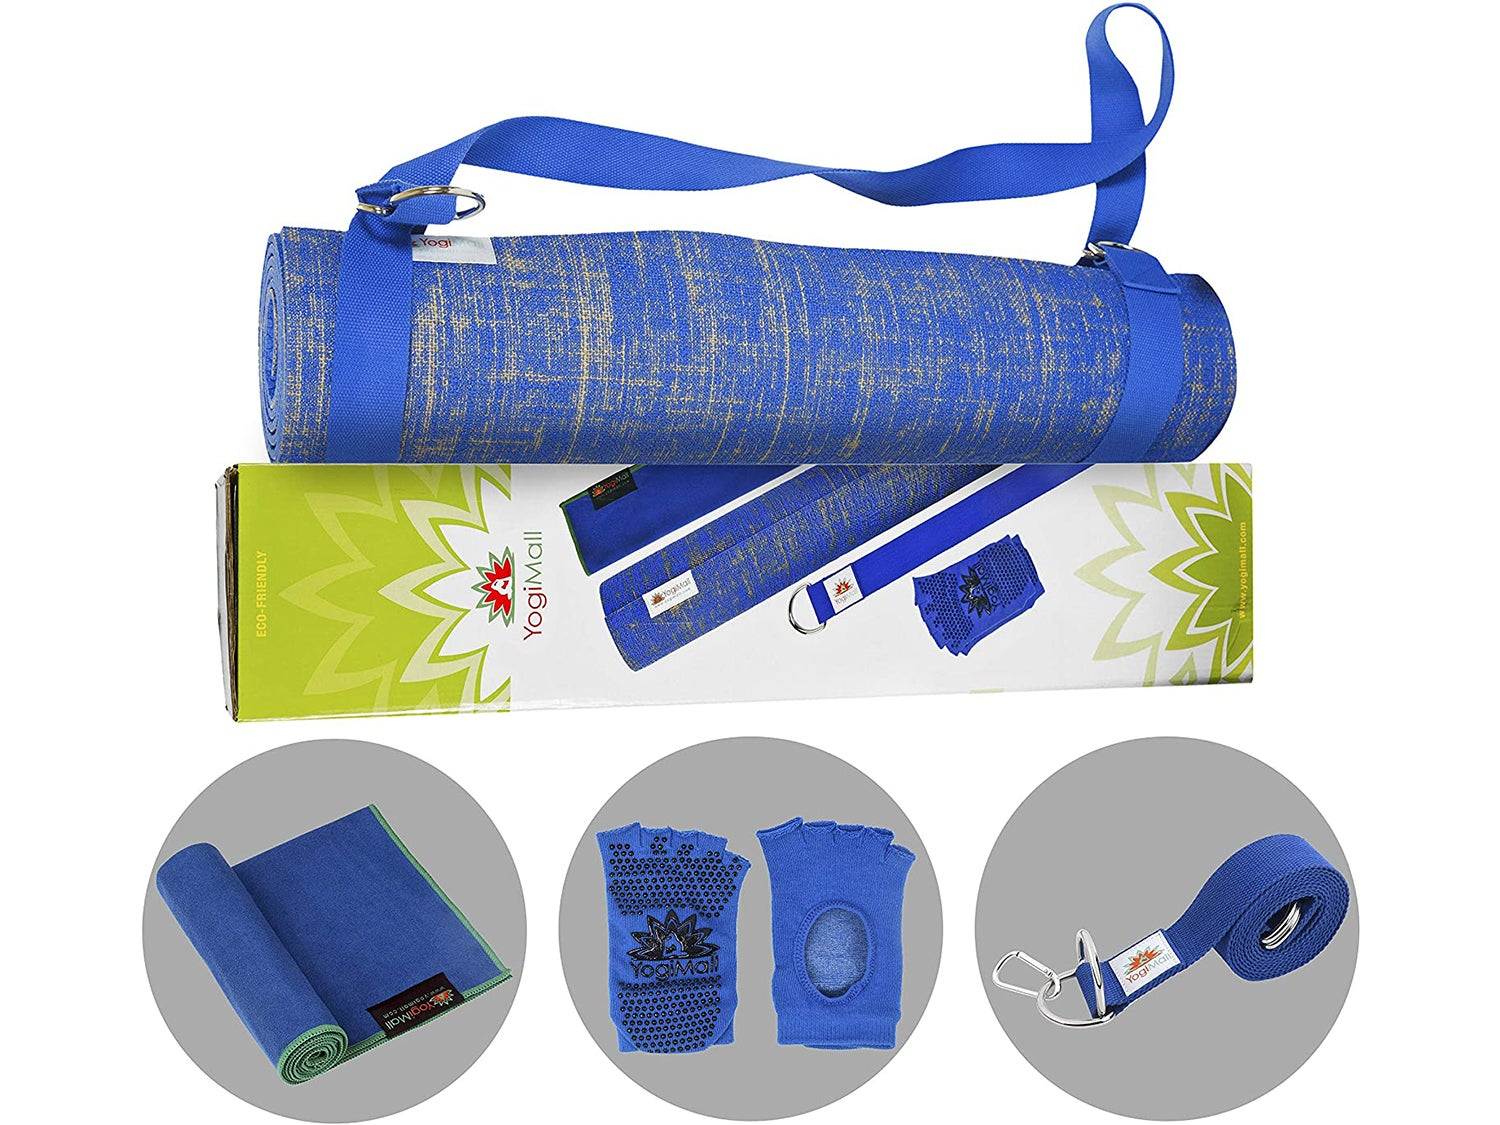 YogiMall Natural Jute Yoga Mat Kit - Ultimate Yoga Essentials Set for Home, Gym & Studio - Includes Non-Slip Socks, Cotton Strap & Hand Towel - Eco Friendly, Reversible, Non-Toxic and SGS Certified.